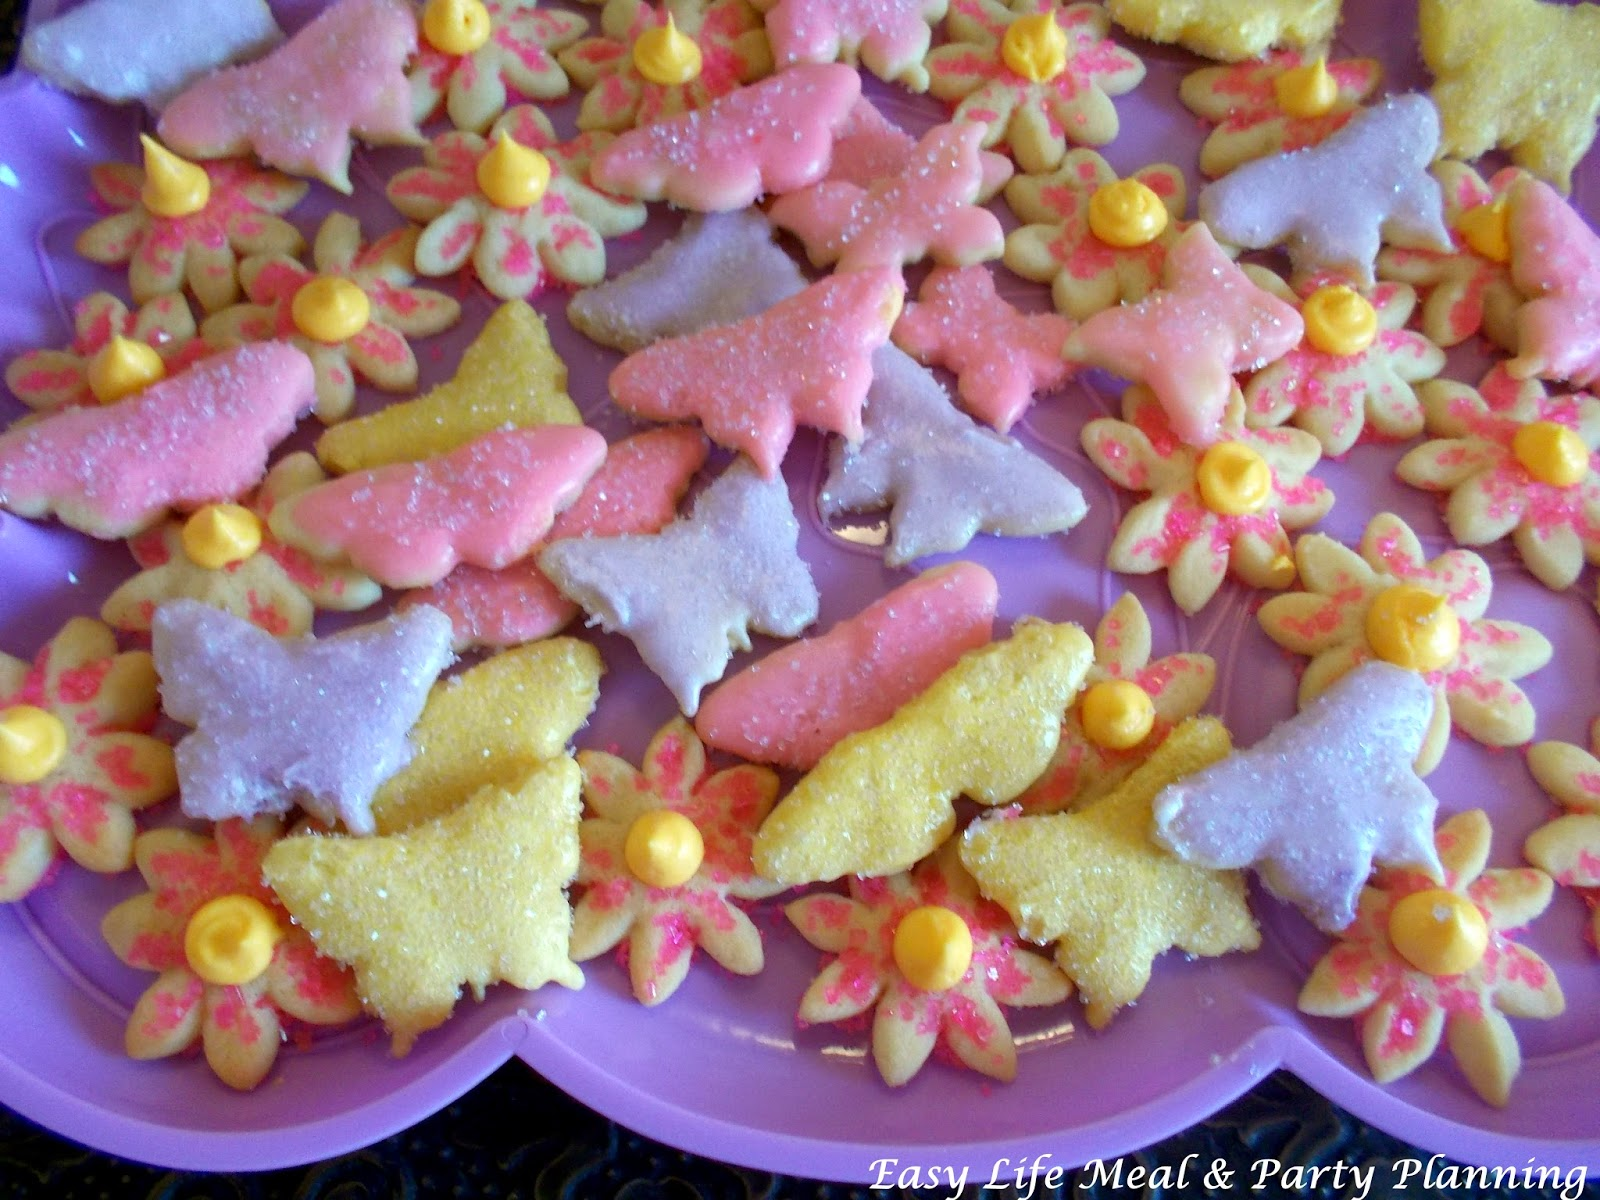 Vanilla sugar Easter Cookies - Easy Life Meal & Party Planning